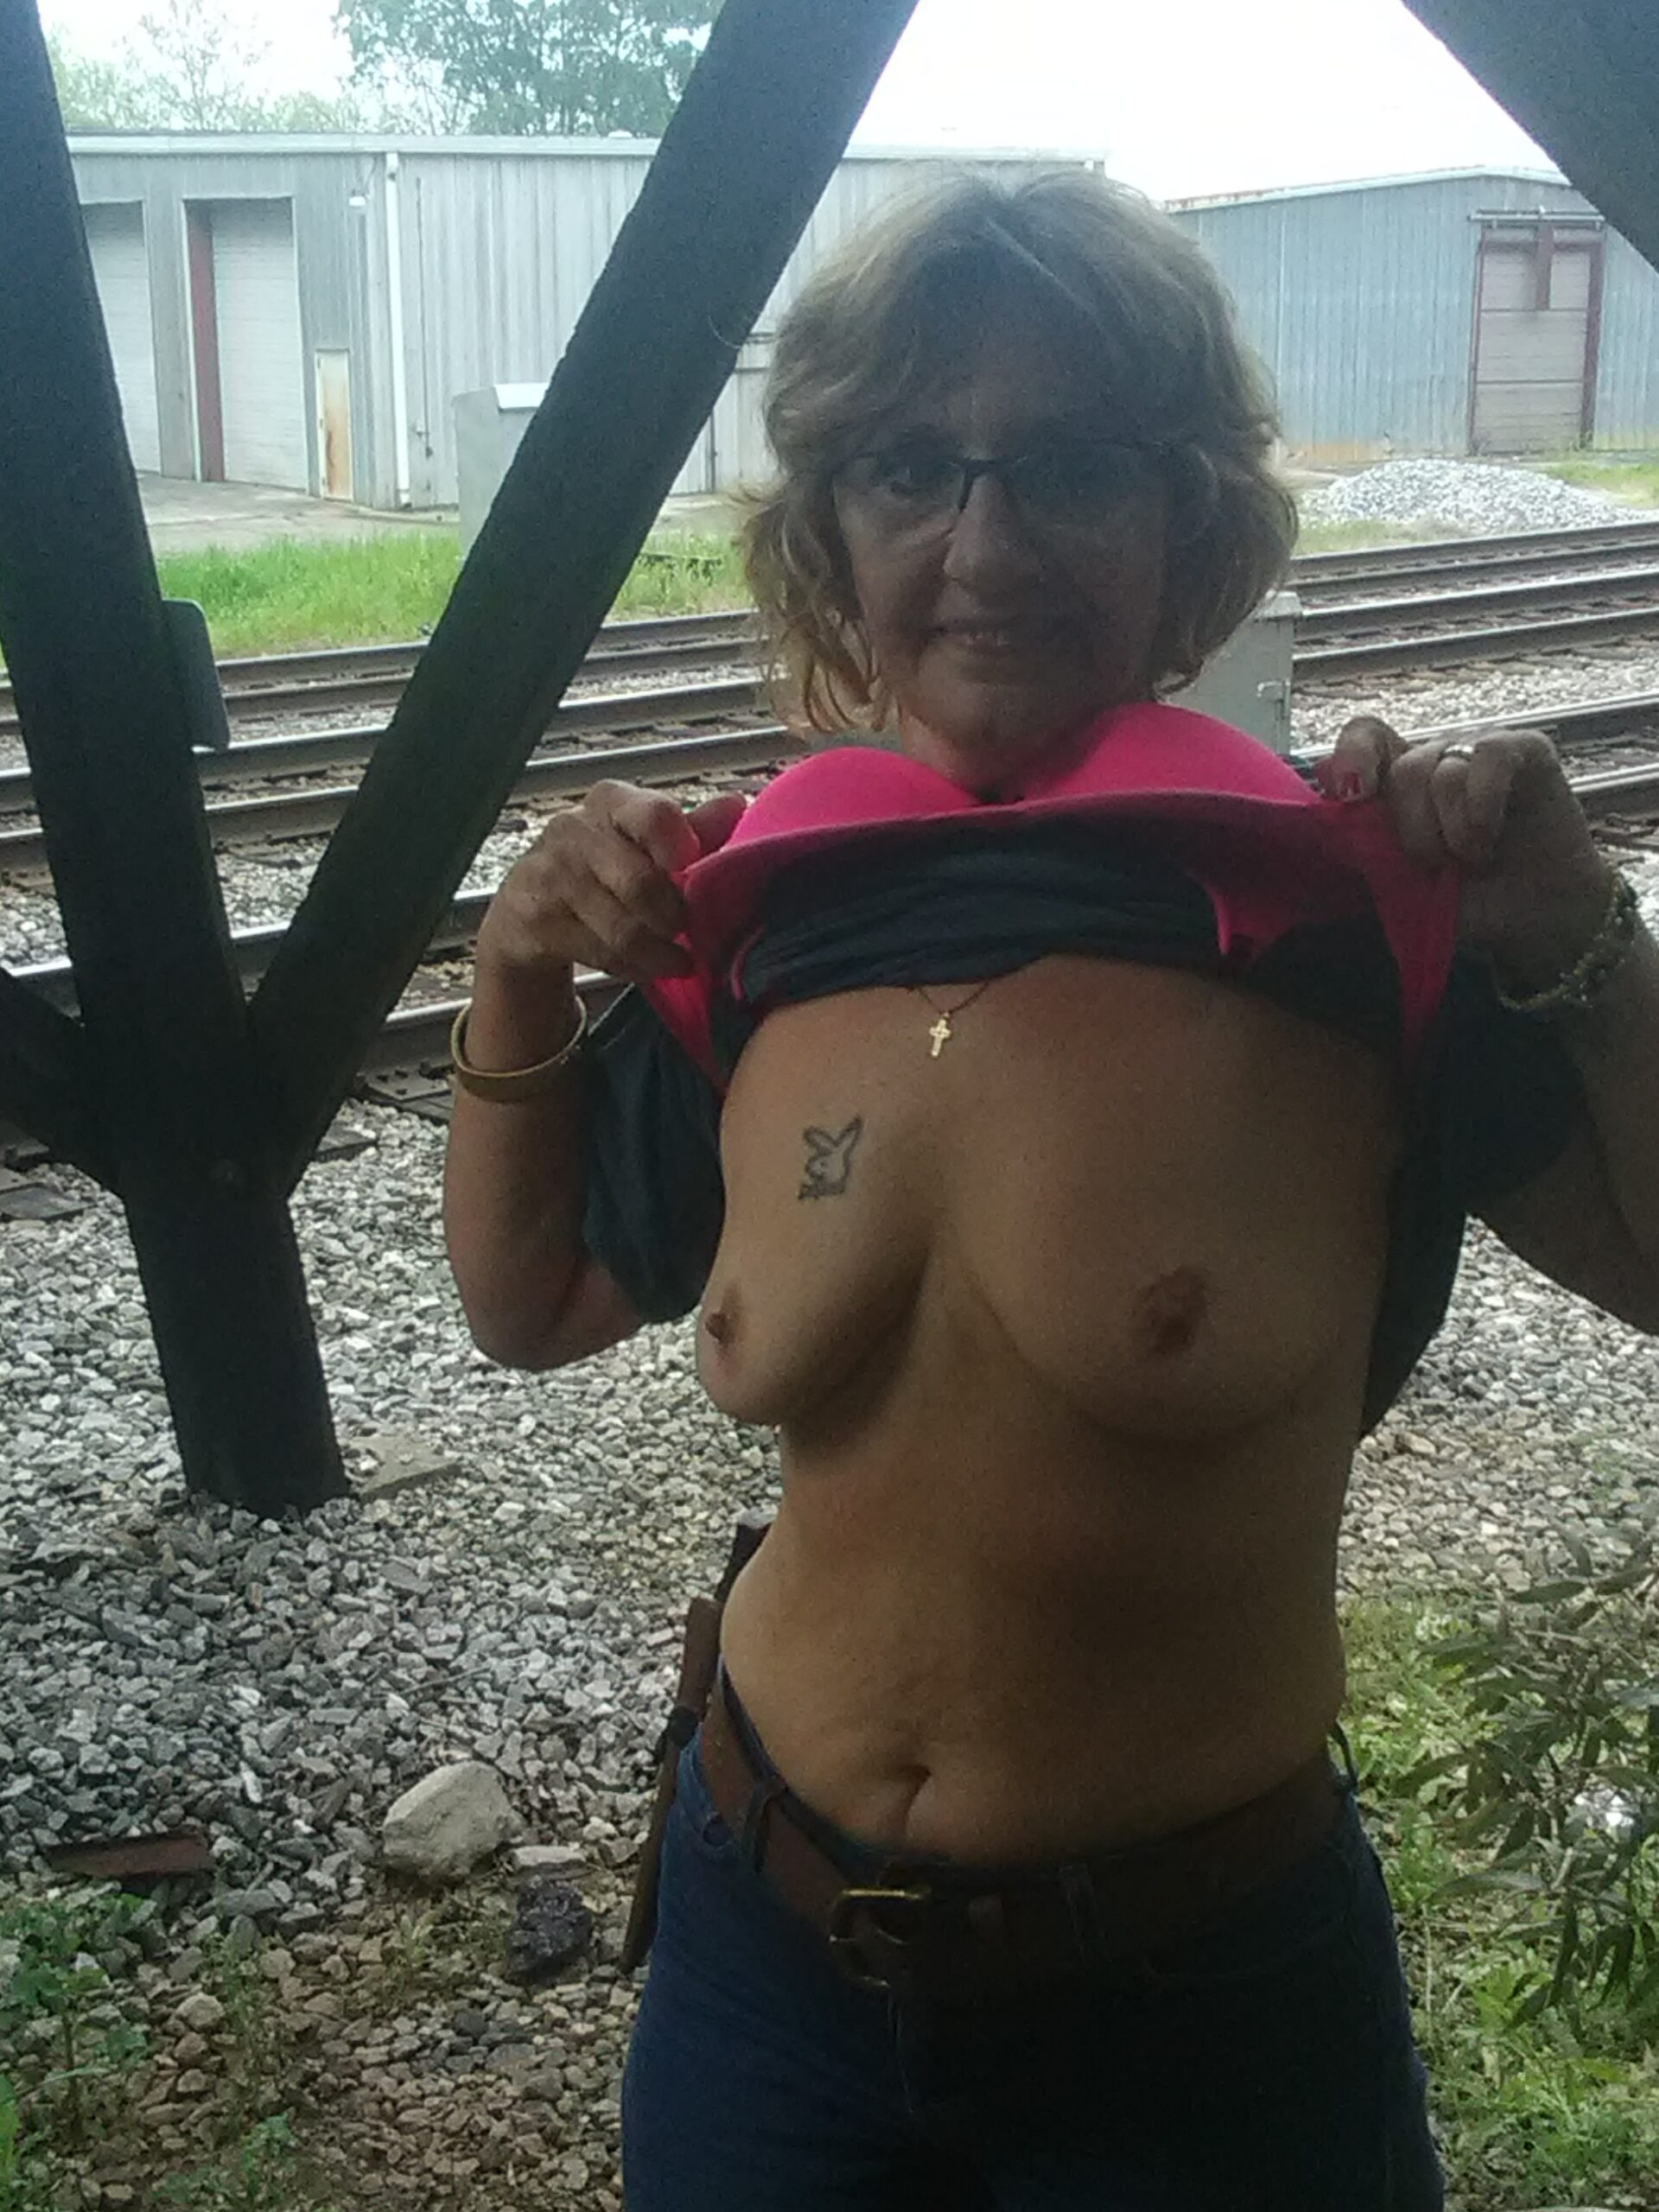 Granny flashing trains real nudity public flashing mature boobs flash